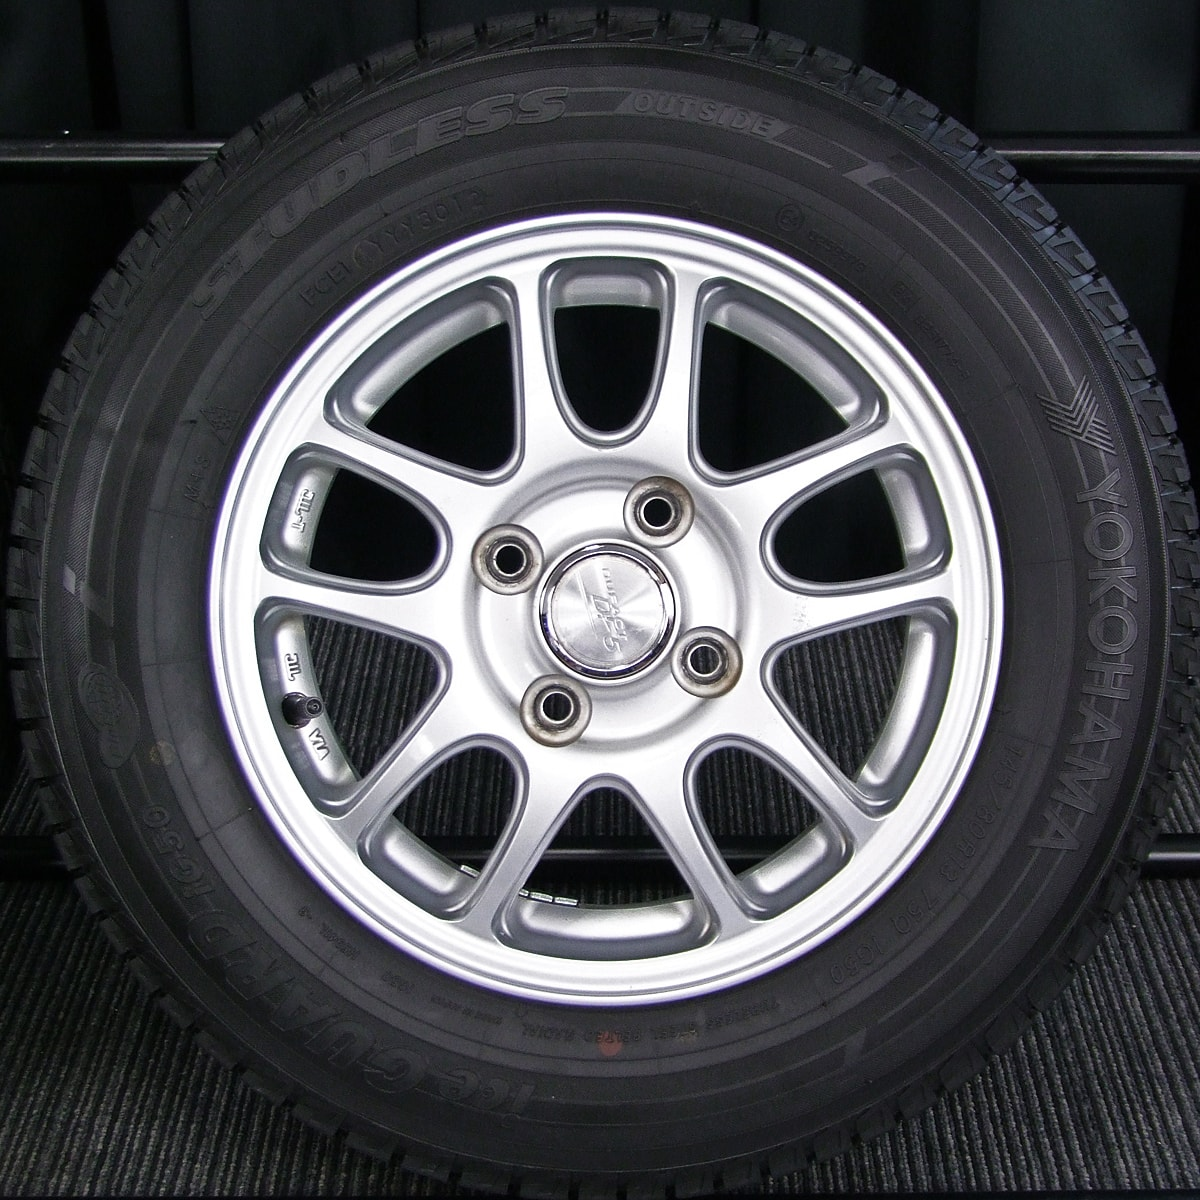 MANARAYSPORT ROADLINE FX シルバー YOKOHAMA iceGUARD iG50 145/80R13 4本SET